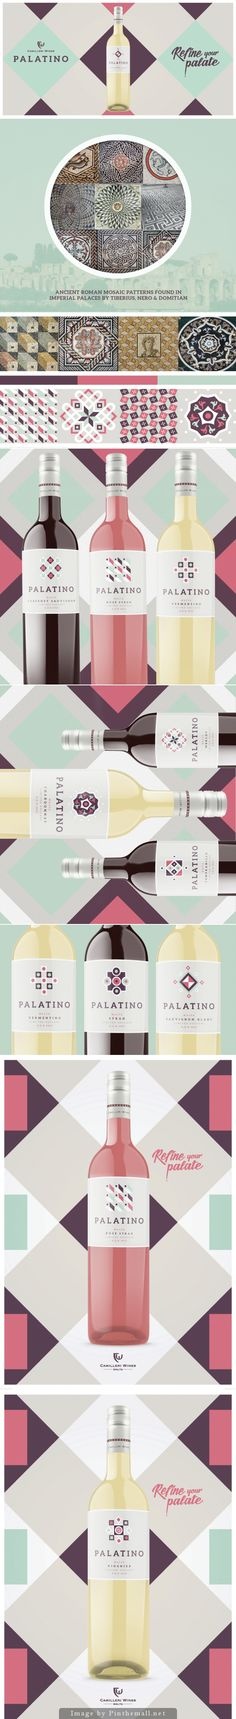 Beautiful Wine Labels